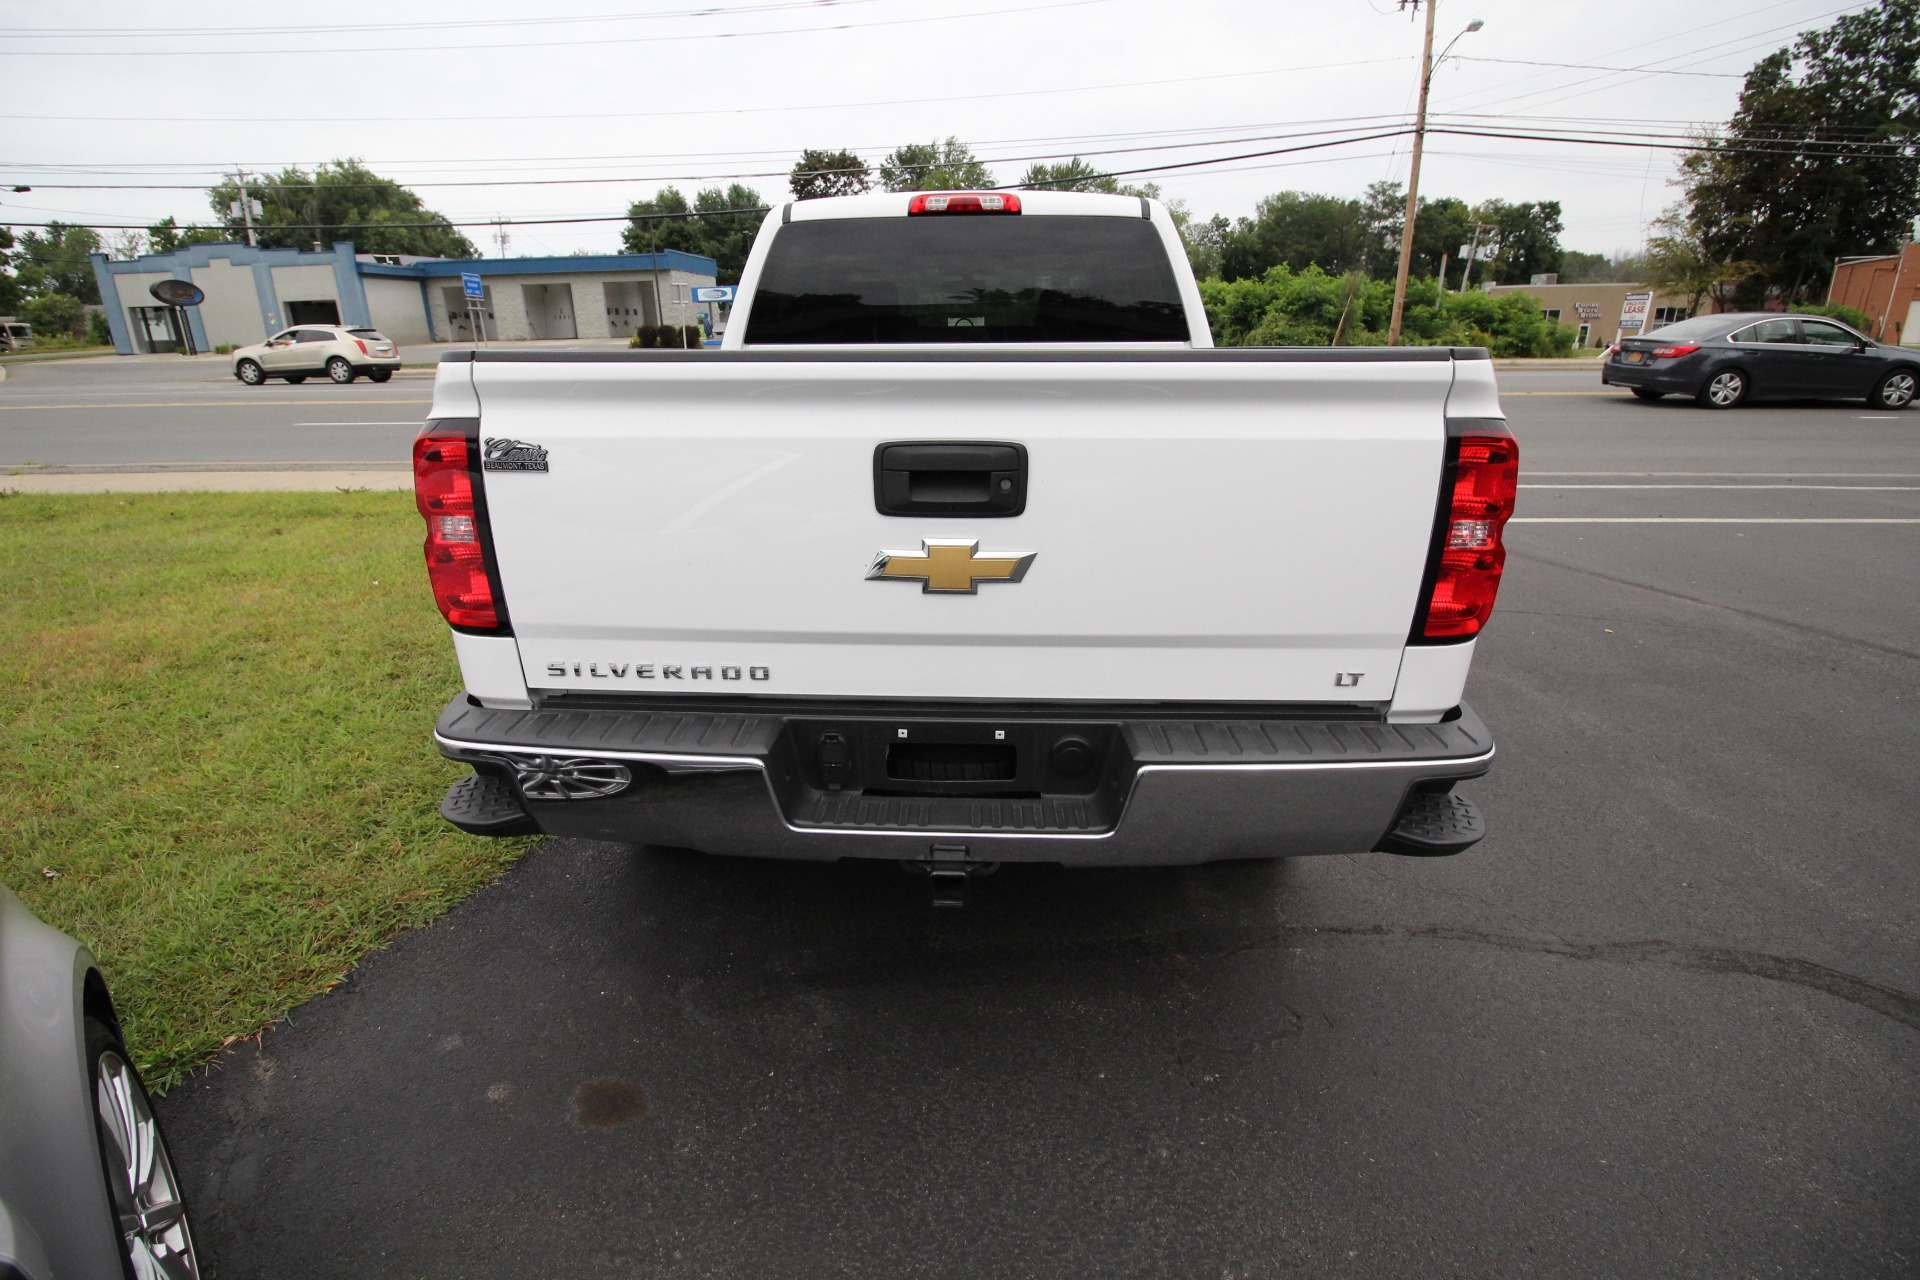 Chevrolet Silverado 1500 Door Hinge Crew Cab Double Cab Manual Guide